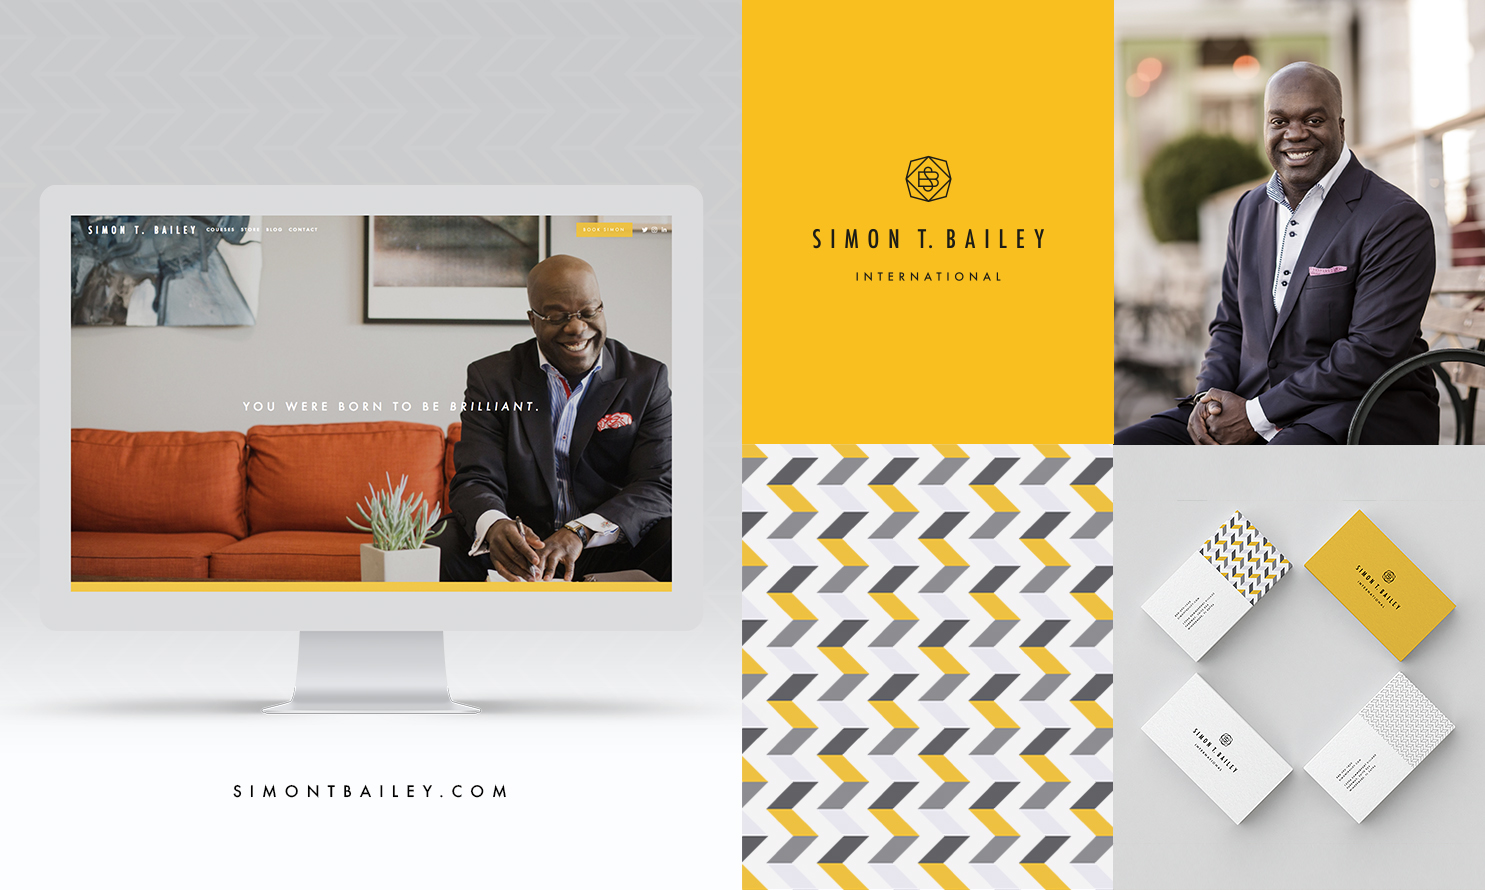 ppc_squarespace_simontbailey.jpg